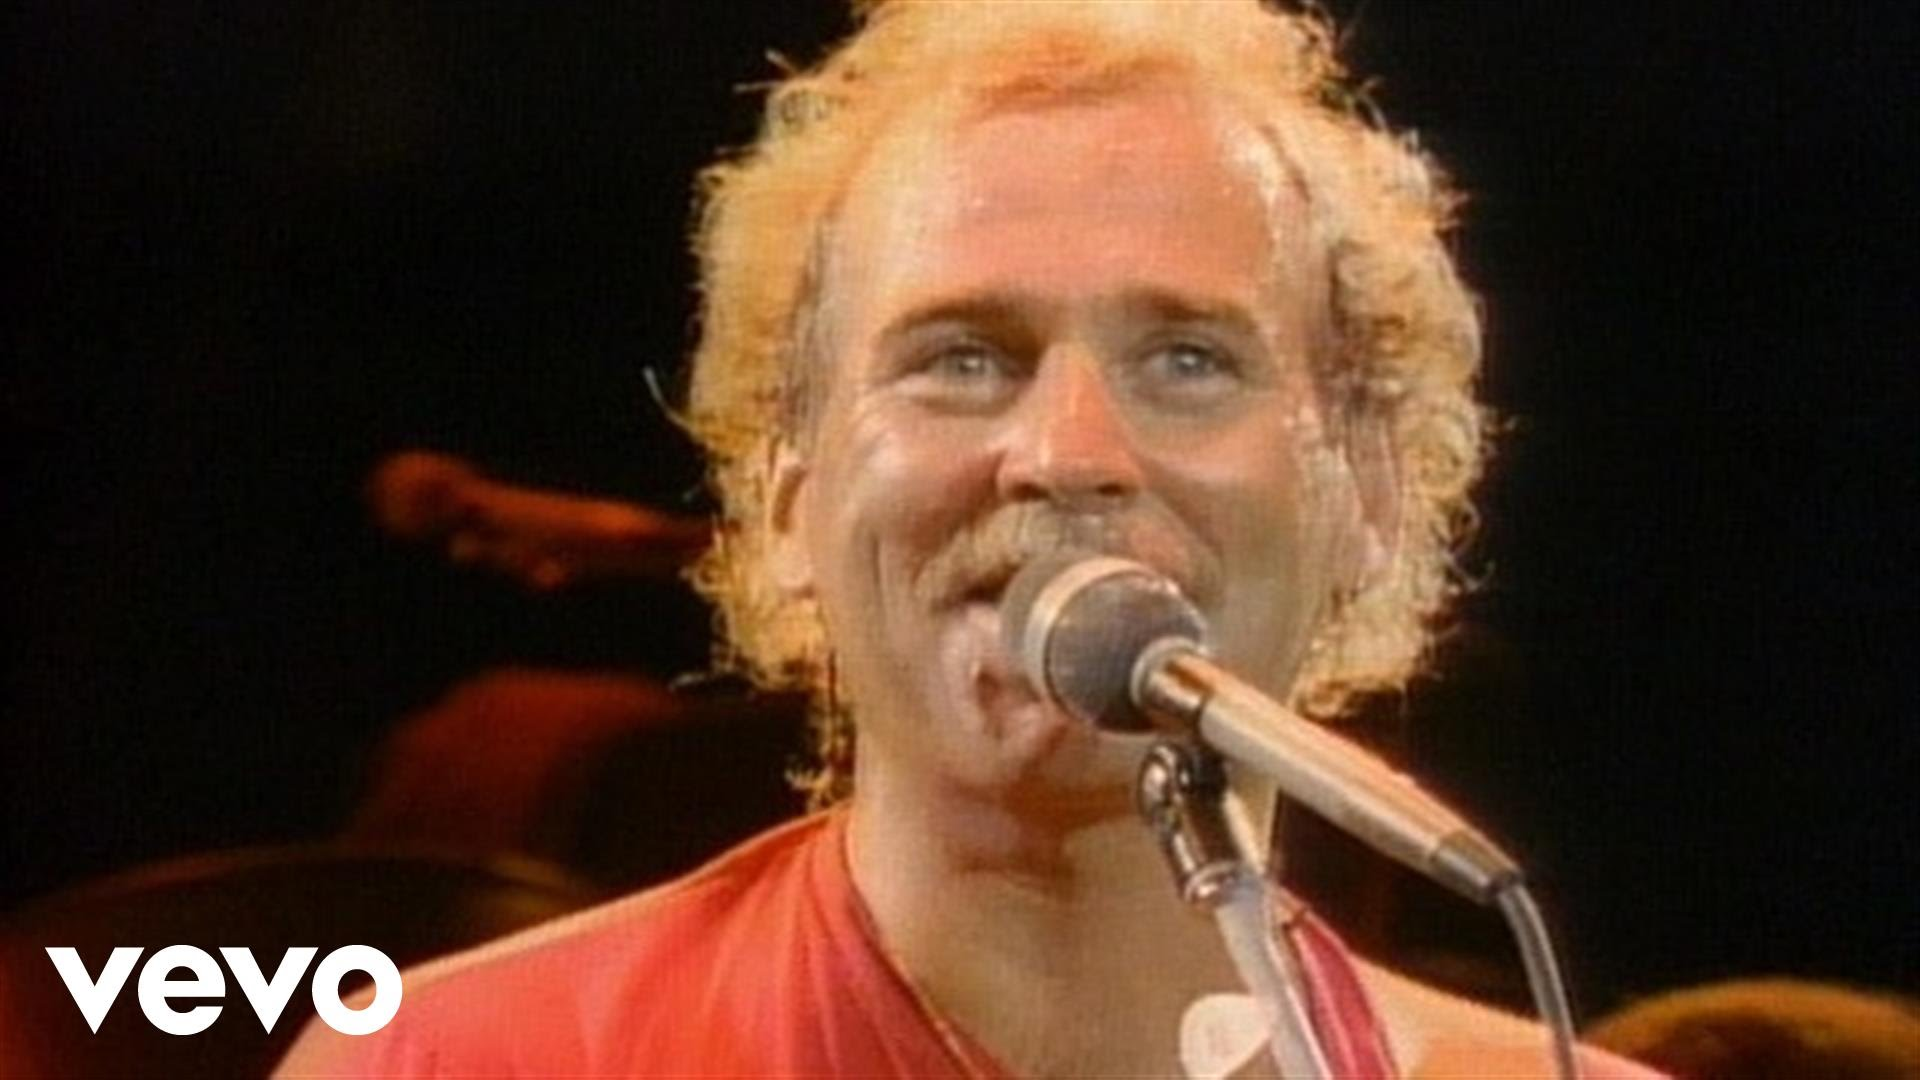 5 things you didn't know about Jimmy Buffett - AXS